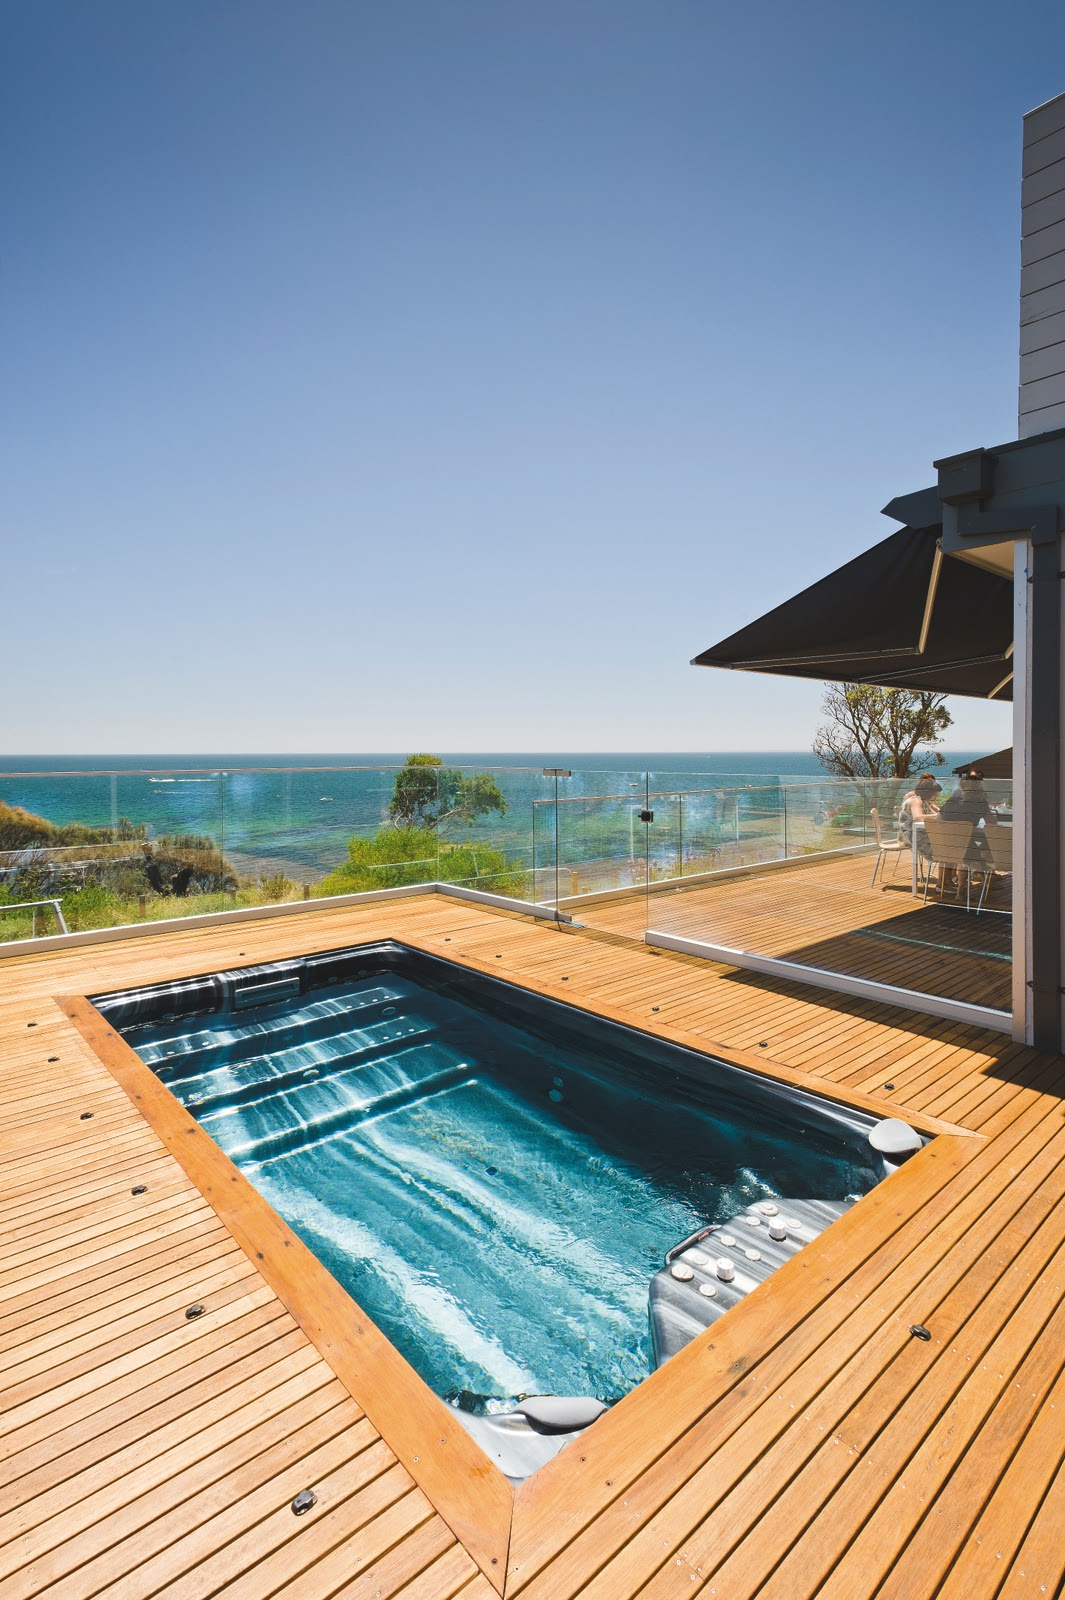 Spa In Swimming Pool: Endless Spas: Endless Spa On-Site Swim Spa Inspections